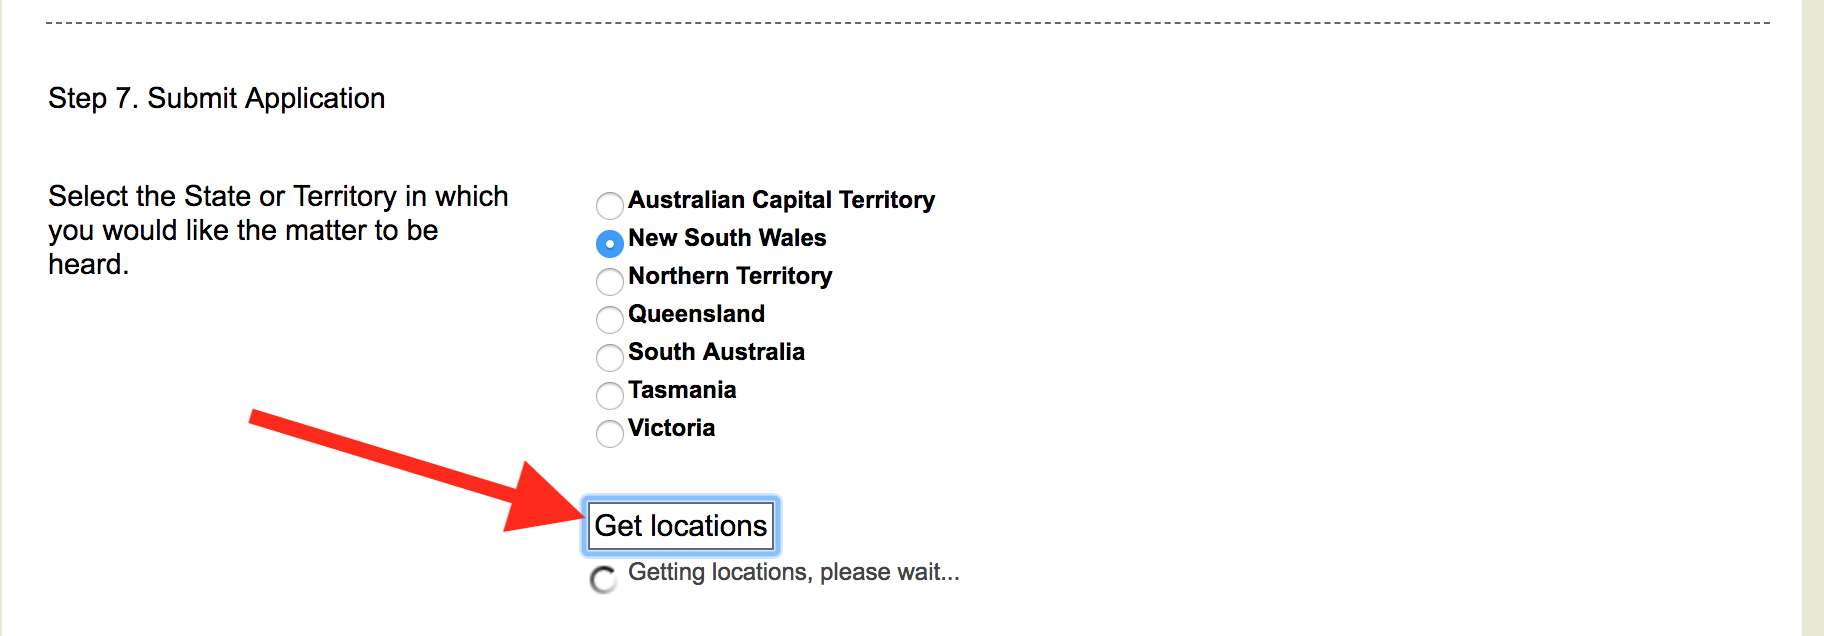 Get locations button - commonwealth courts portal